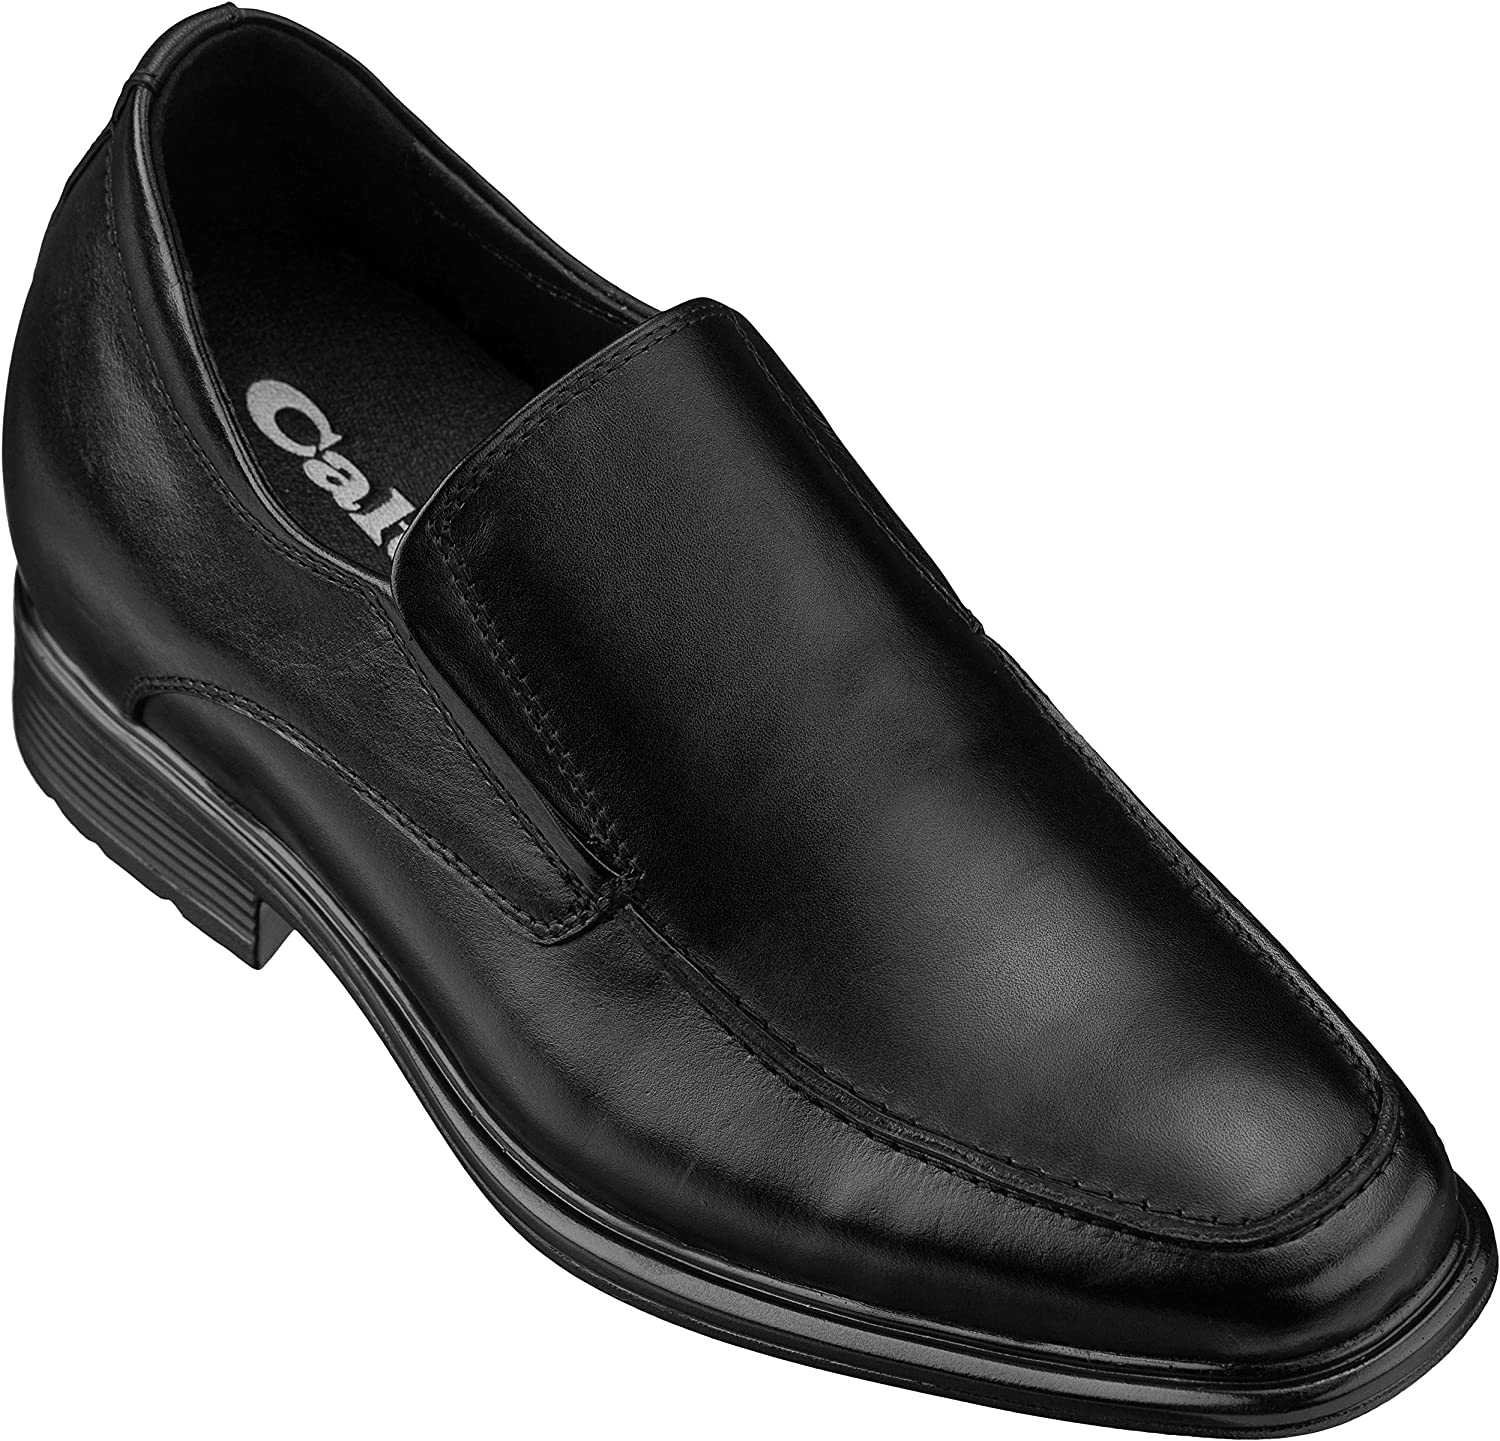 CALTO Men's Invisible Height Increasing Elevator shoes - Black Premium Leather Slip-on Formal Loafers - 3 Inches Taller - G60128A